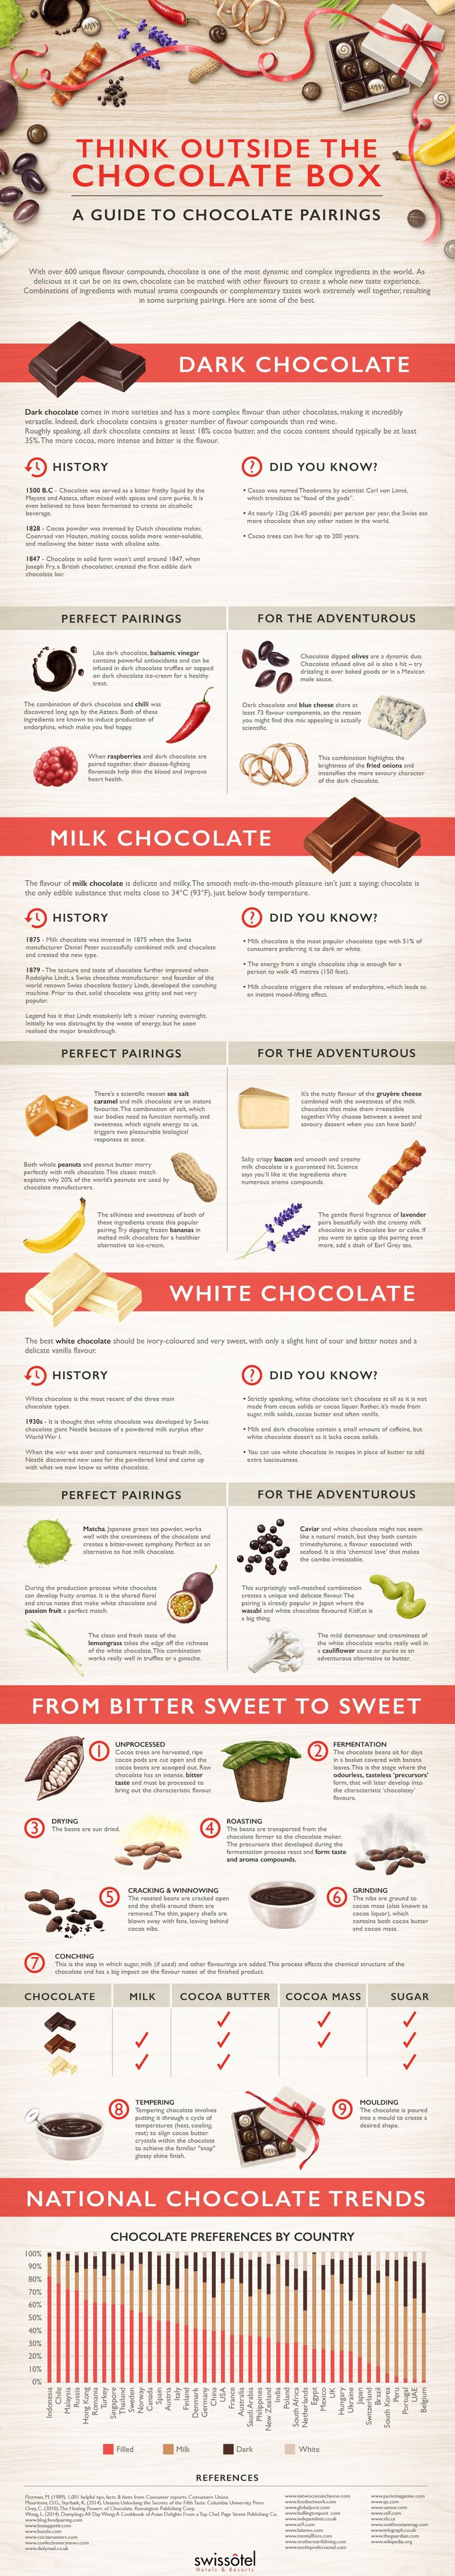 Think Outside the Chocolate Box #infographic #Food #Chocolate